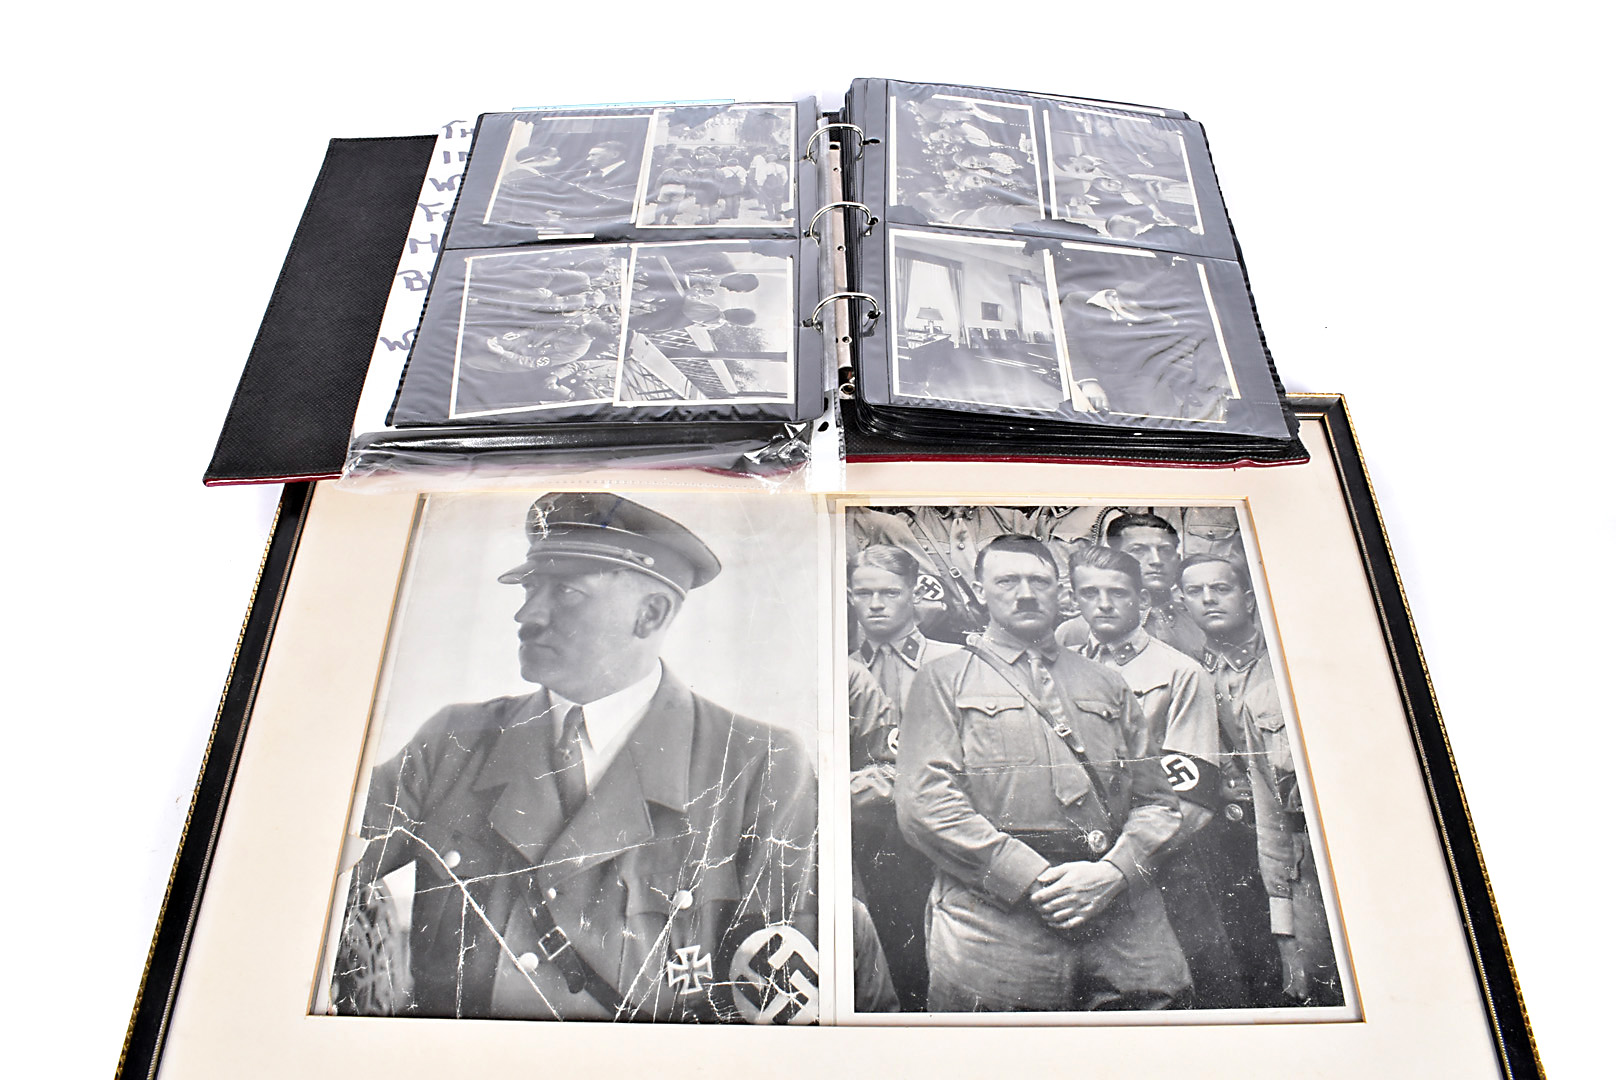 A selection of WWII German black and white photographs, depicting German troops, Hitler, various